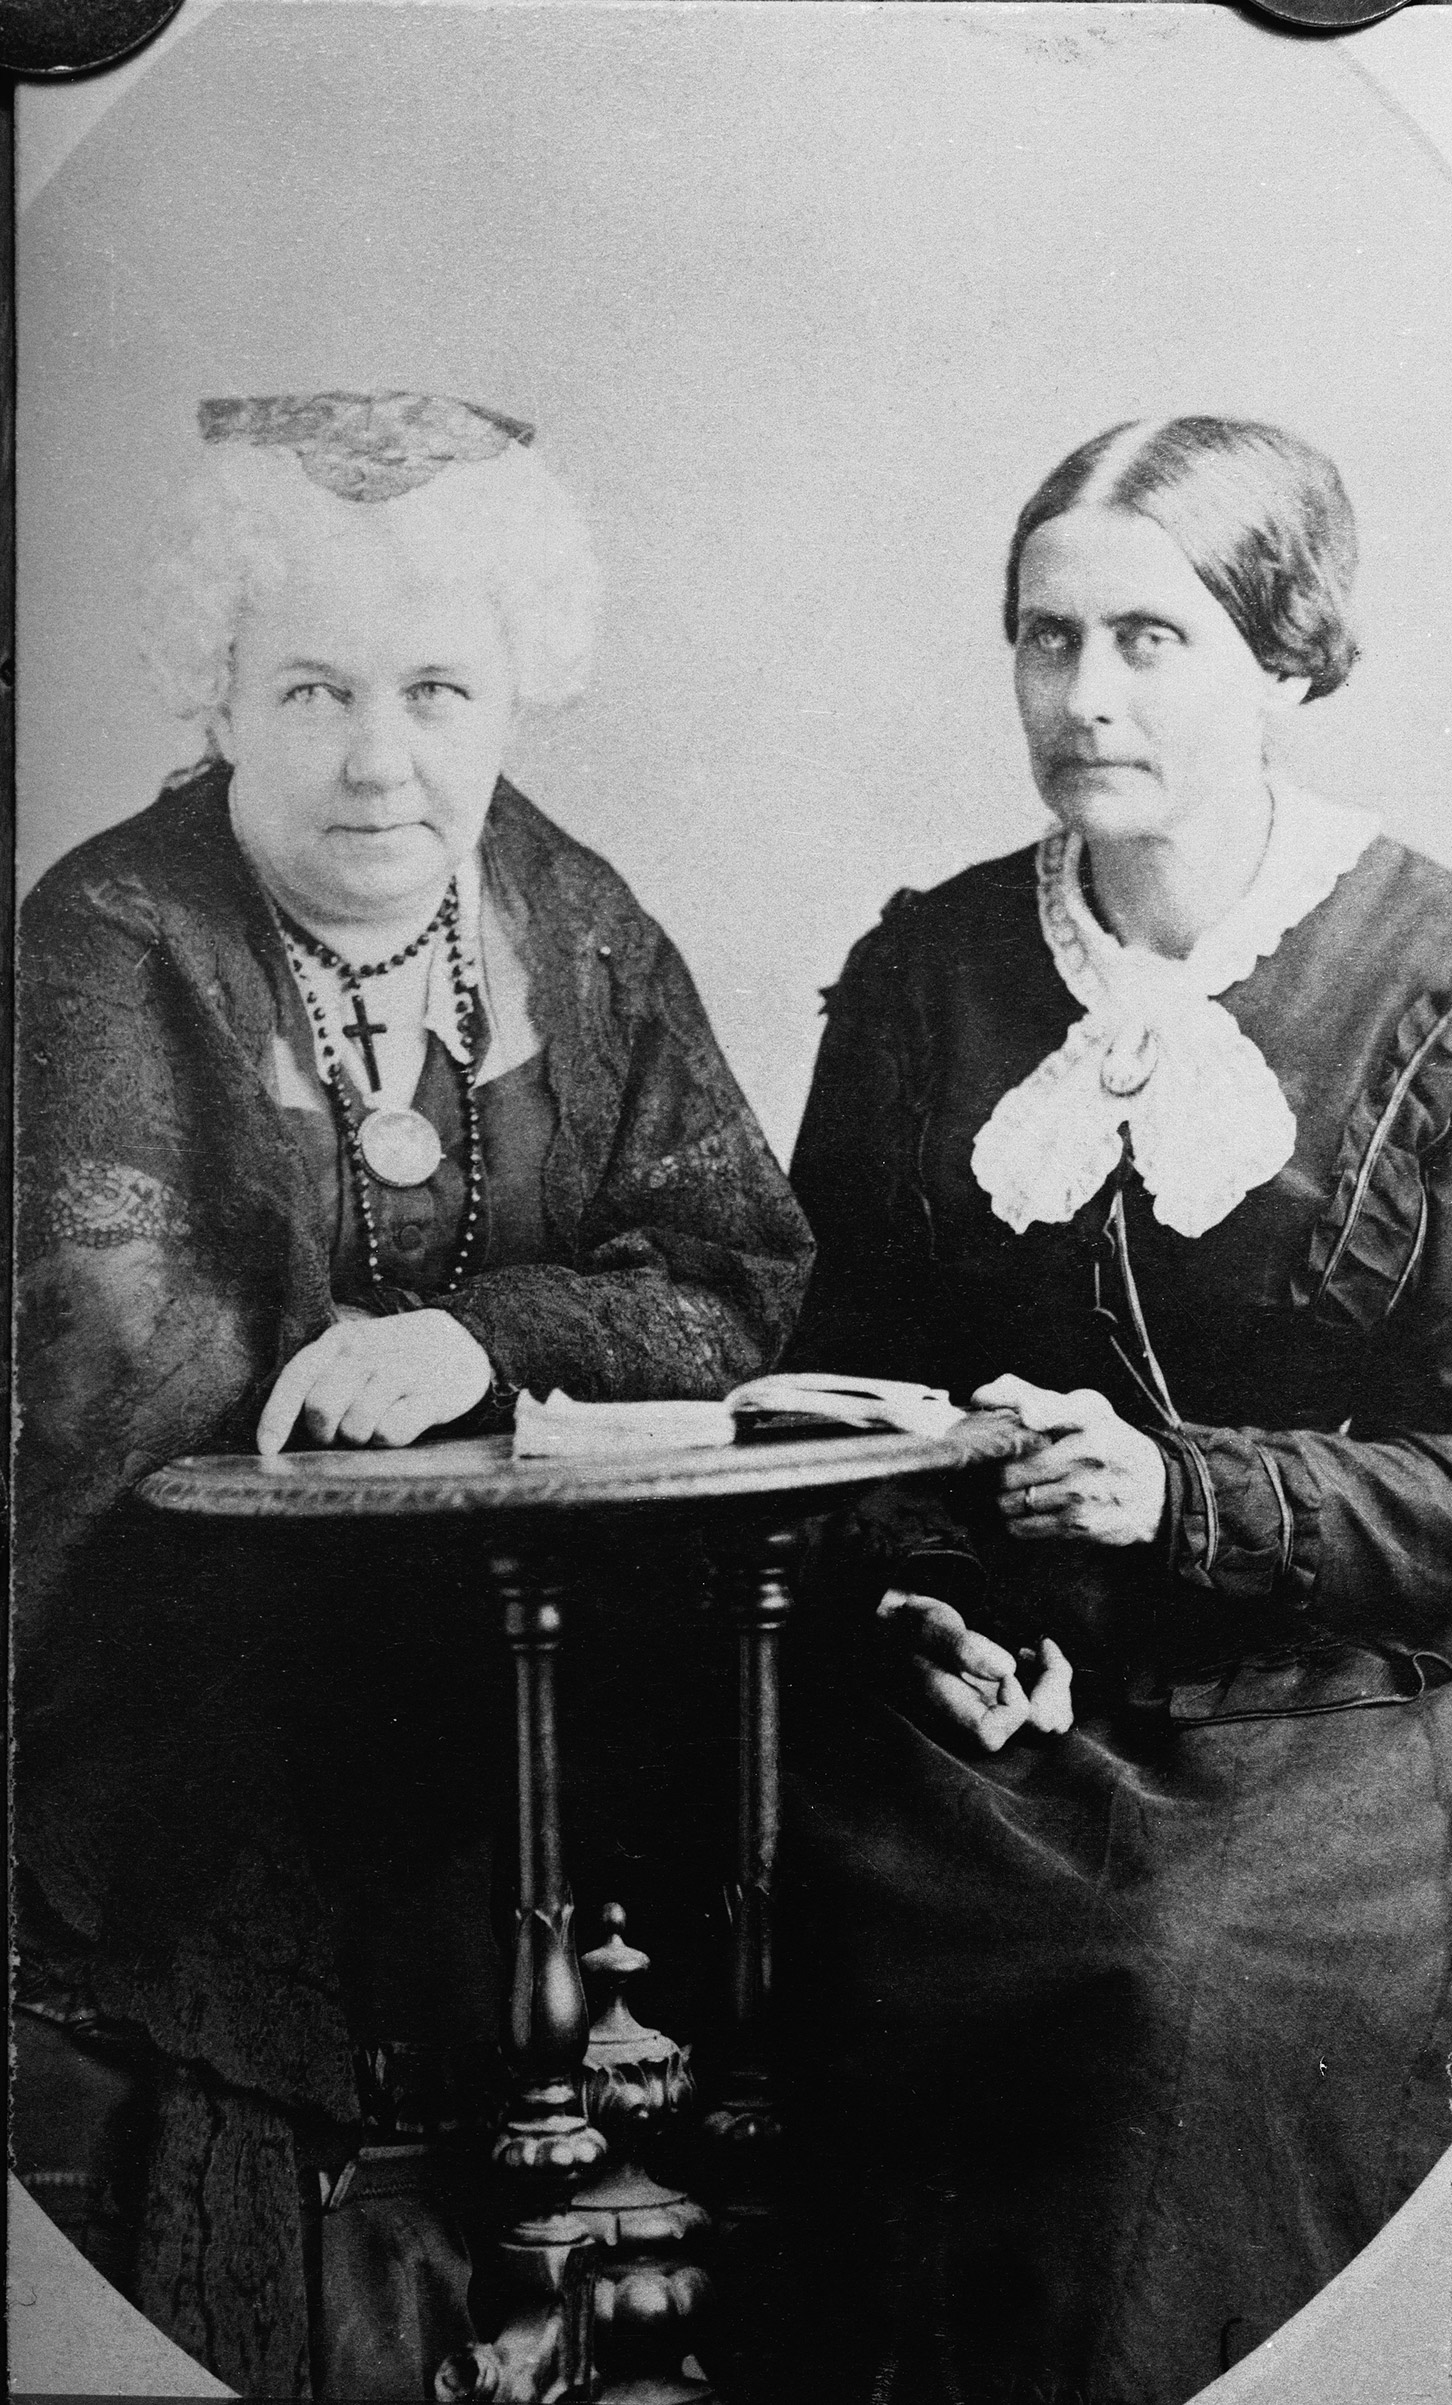 American suffragettes Susan B. Anthony and Elizabeth Cady Stanton sit at a desk together, circa 1890s.